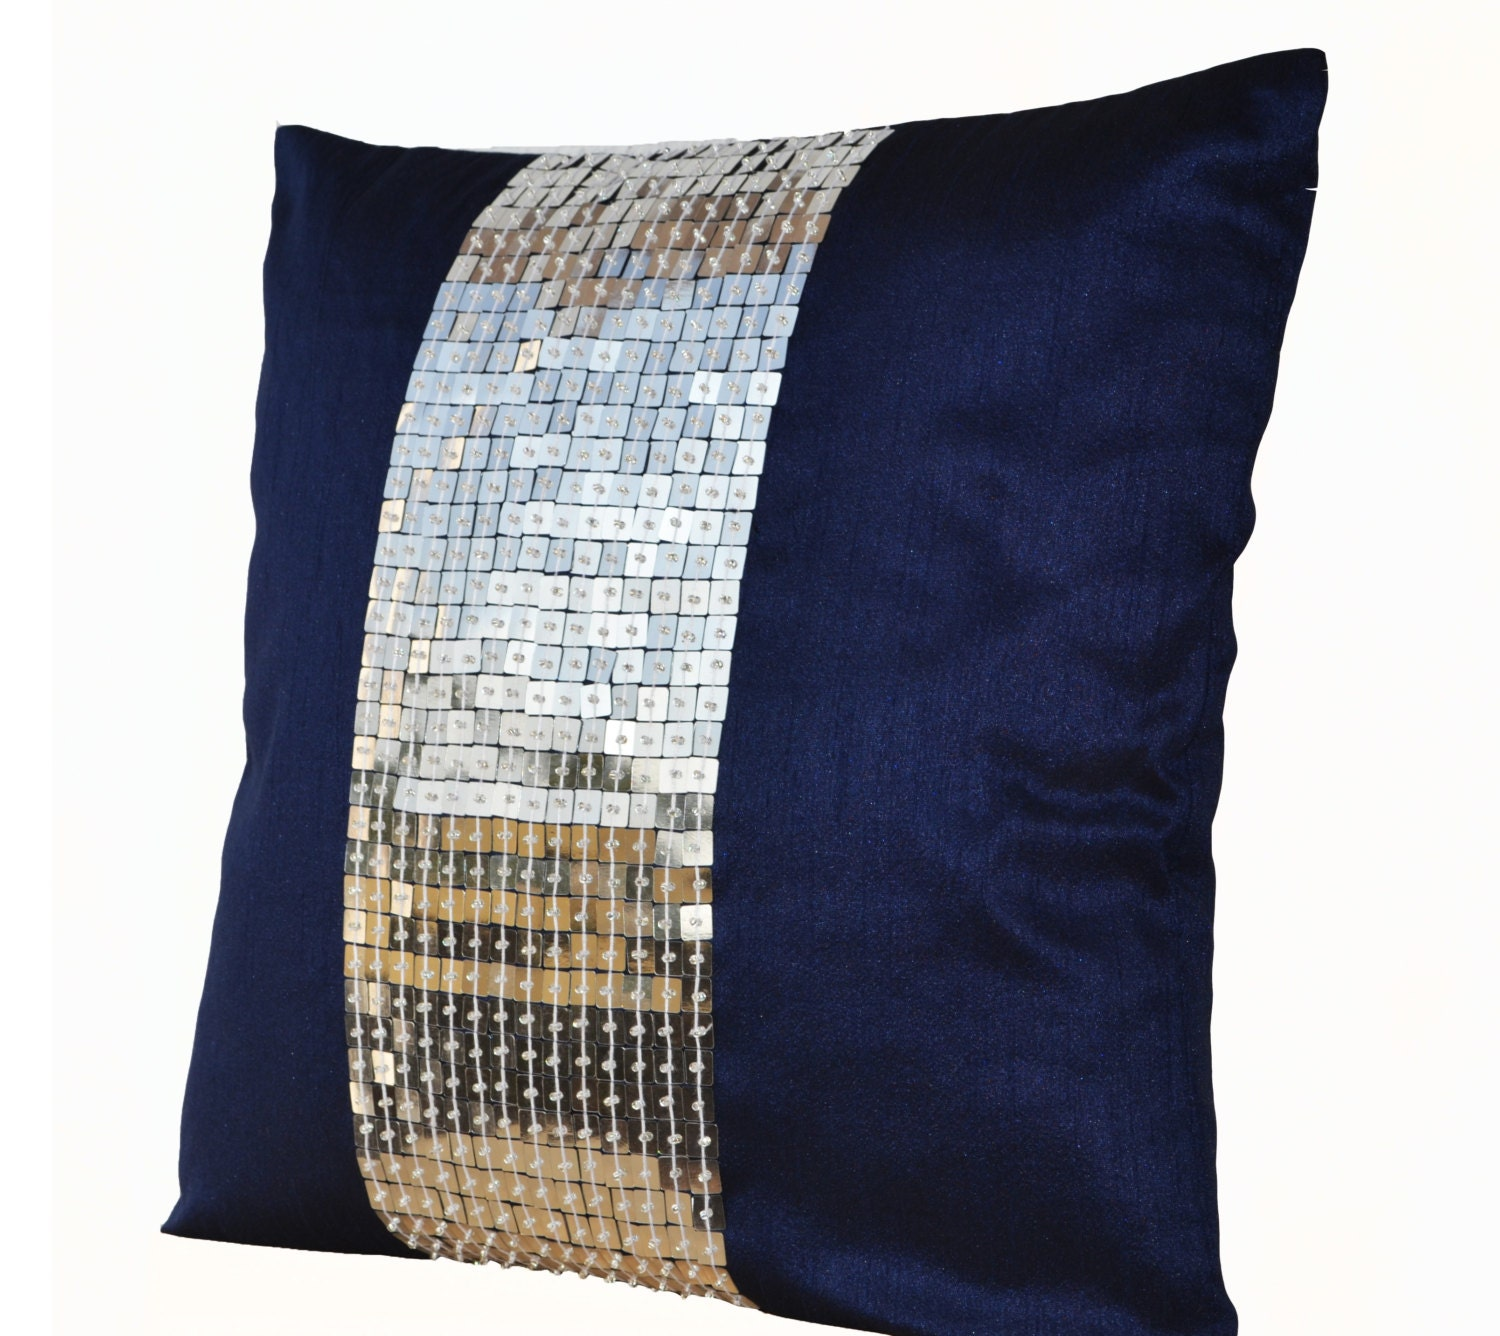 Find and save ideas about Navy blue pillows on Pinterest. | See more ideas about Navy blue throw pillows, Navy blue cushions and Blue throws. Gift Pillow Covers - Sequin Pillow Cover - Cushion Covers - Blue Sham - Silver Pillow Covers - Find this Pin and more on .